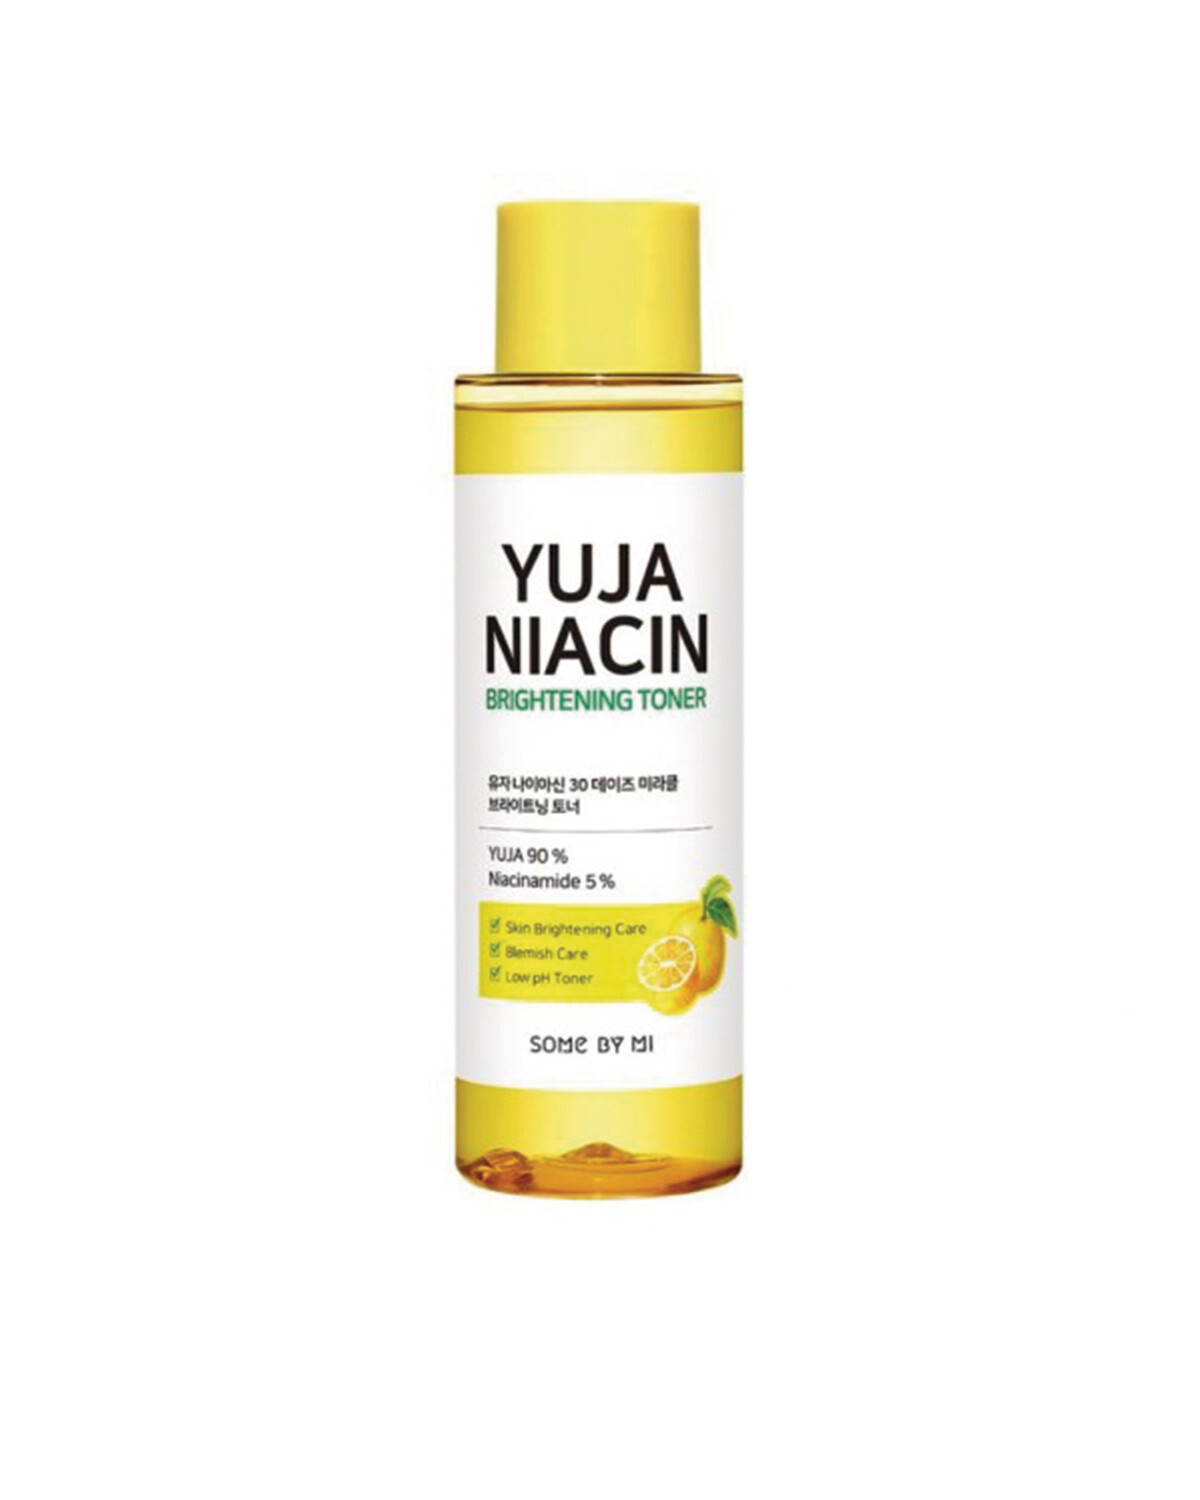 SOME BY MI Yuja Niacin 30 Days Miracle Brightening Toner 150 ml